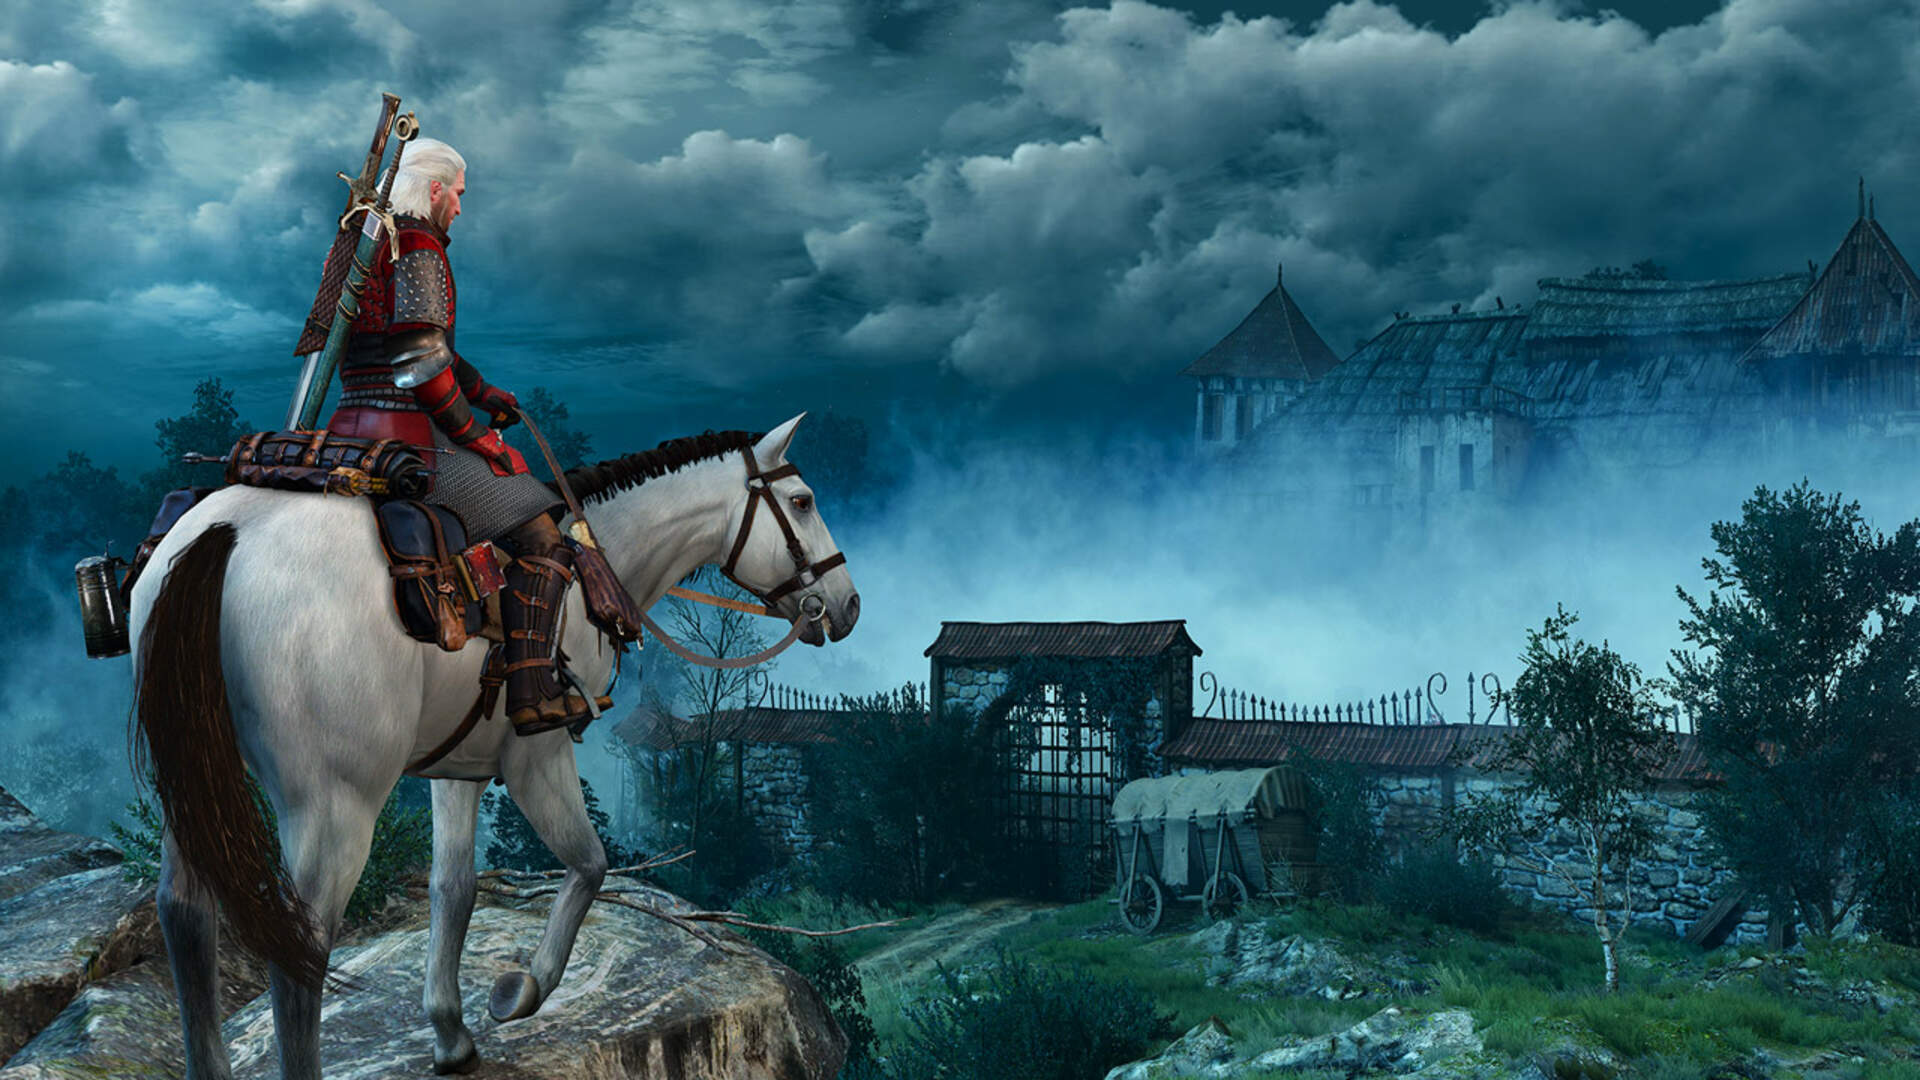 CD Projekt Reportedly Close to Resolving Dispute With Witcher Author